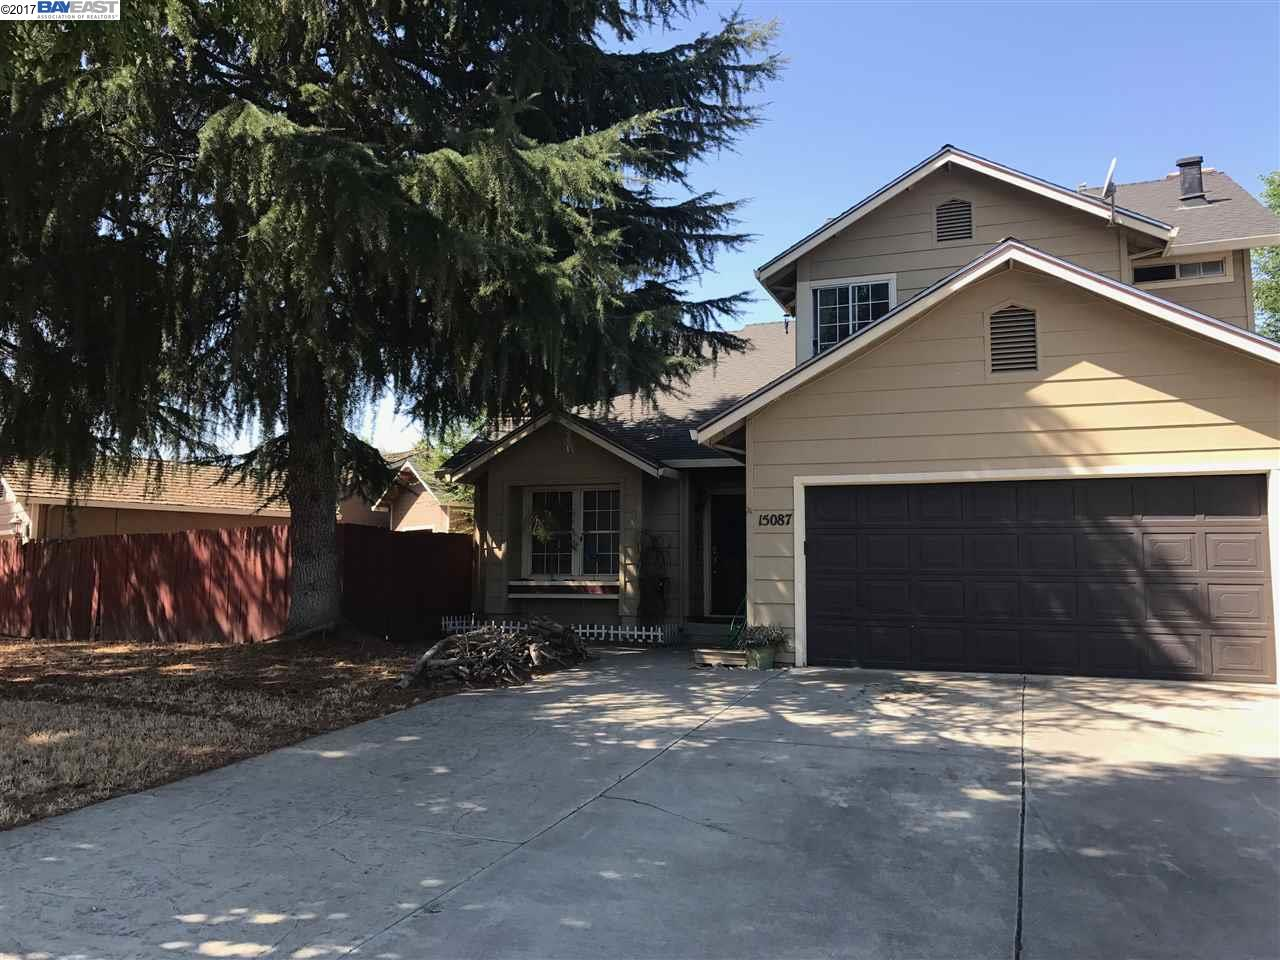 15087 Sunrise Court, LATHROP, CA 95330